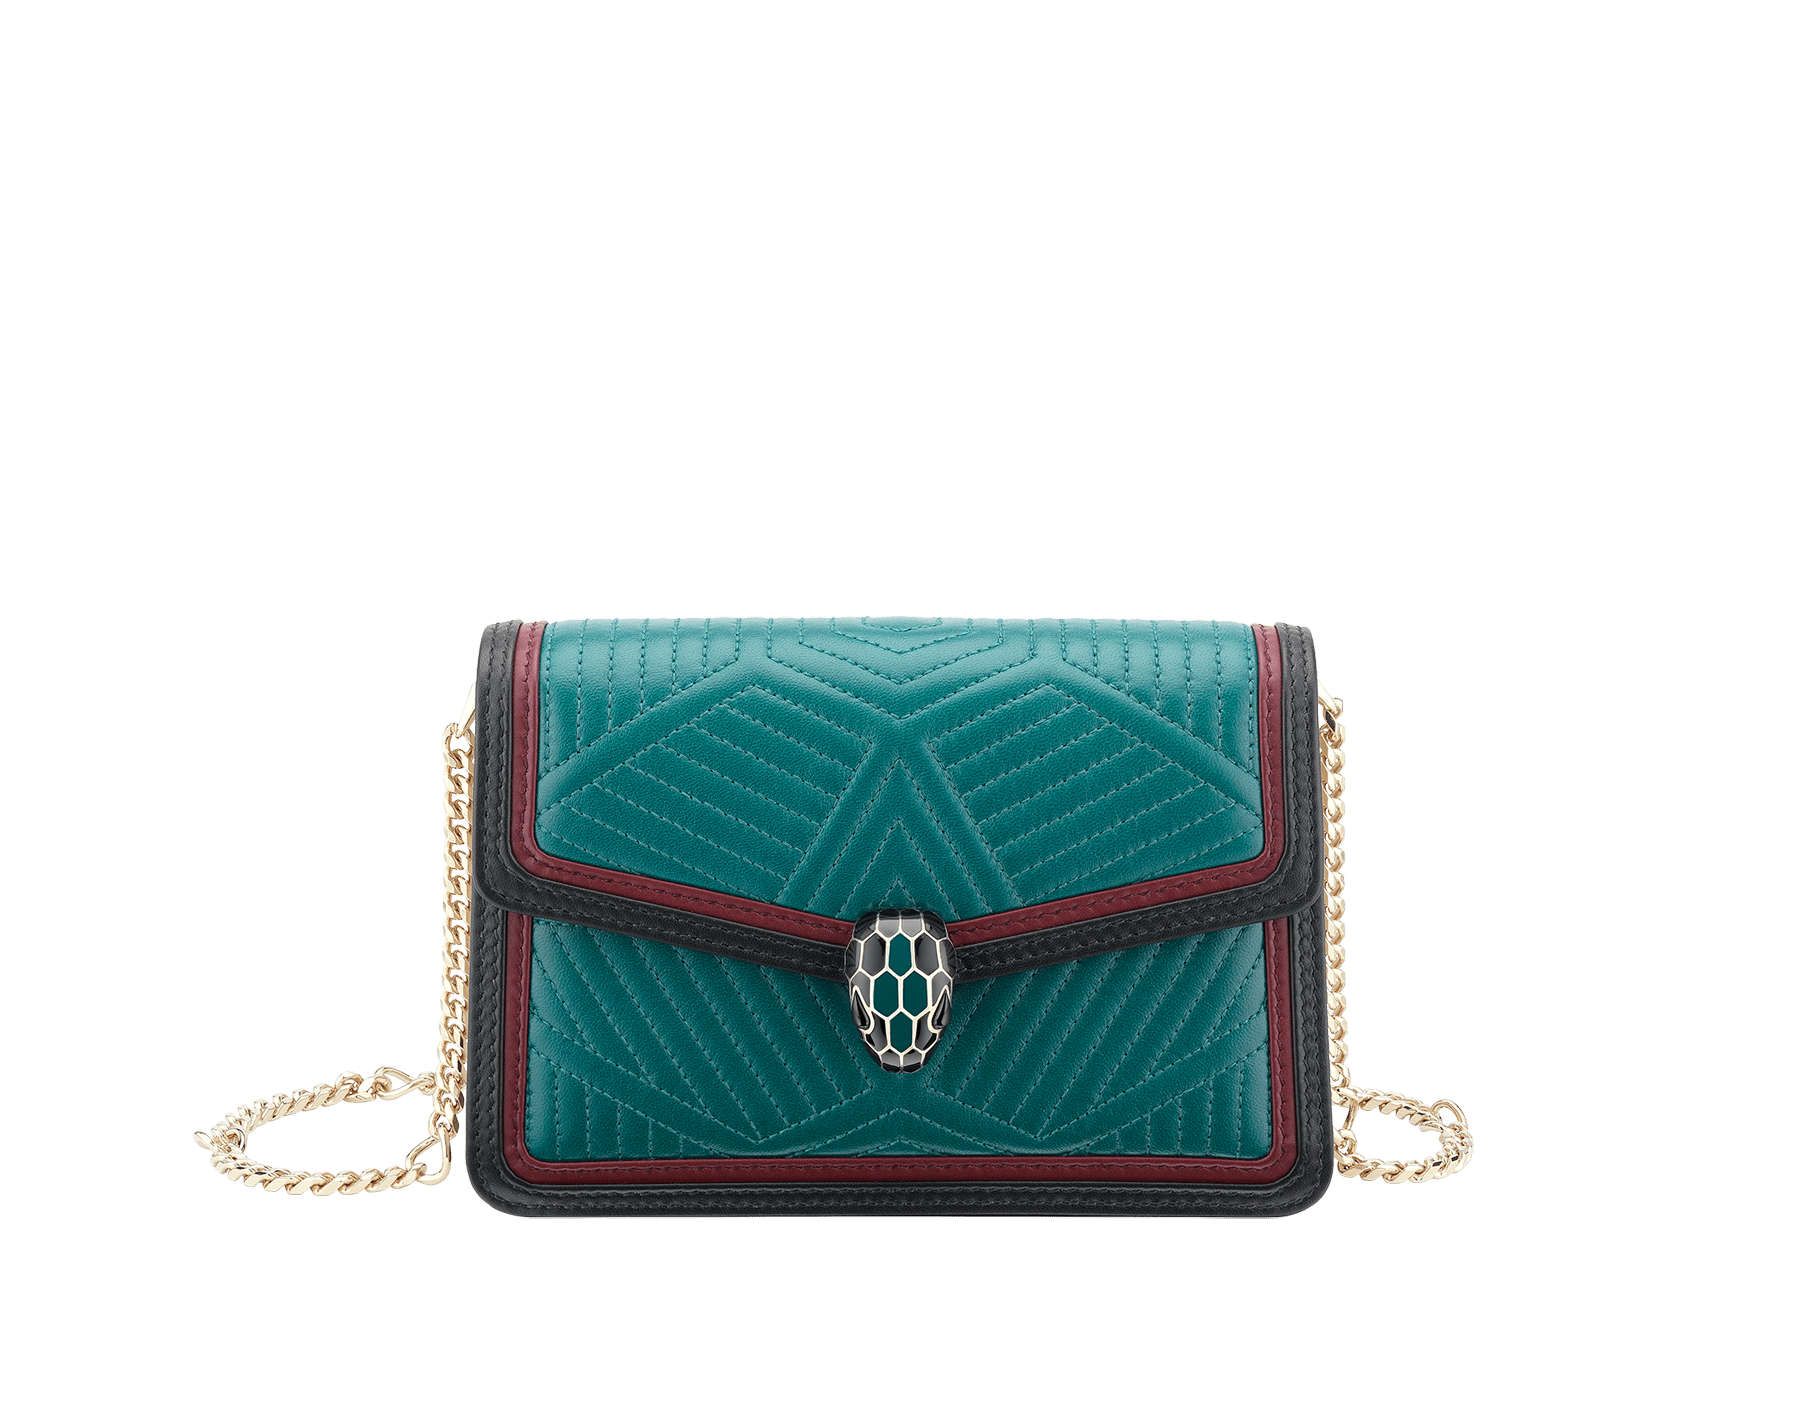 """Serpenti Diamond Blast"" crossbody micro bag with white agate quilted nappa leather body and deep jade and black calf leather frames. Iconic snakehead closure in light gold-plated brass enriched with deep jade and black enamel and black onyx eyes. 987-FQD image 1"